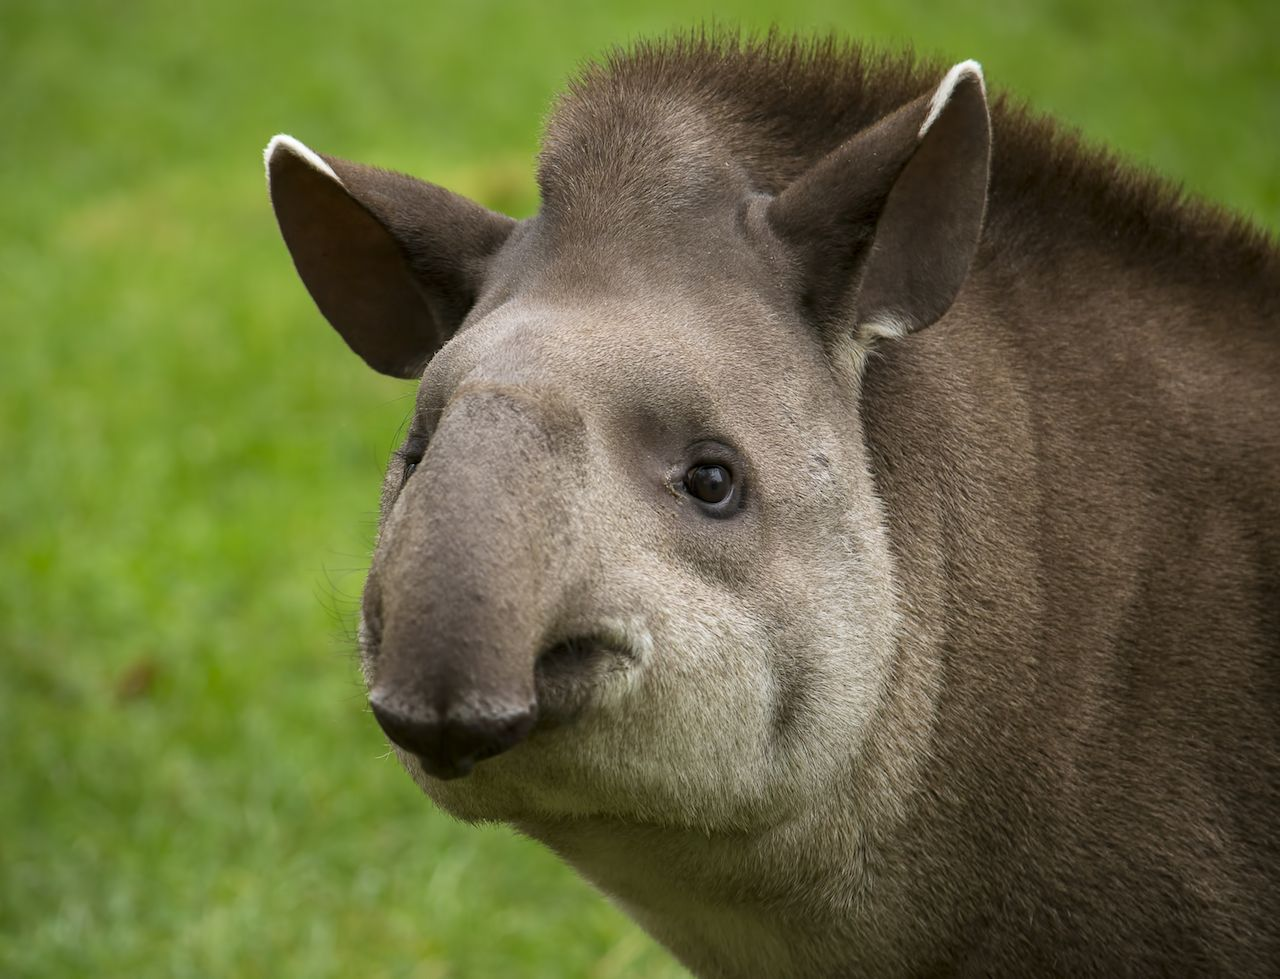 Closeup portrait of a tapir looking into the camera